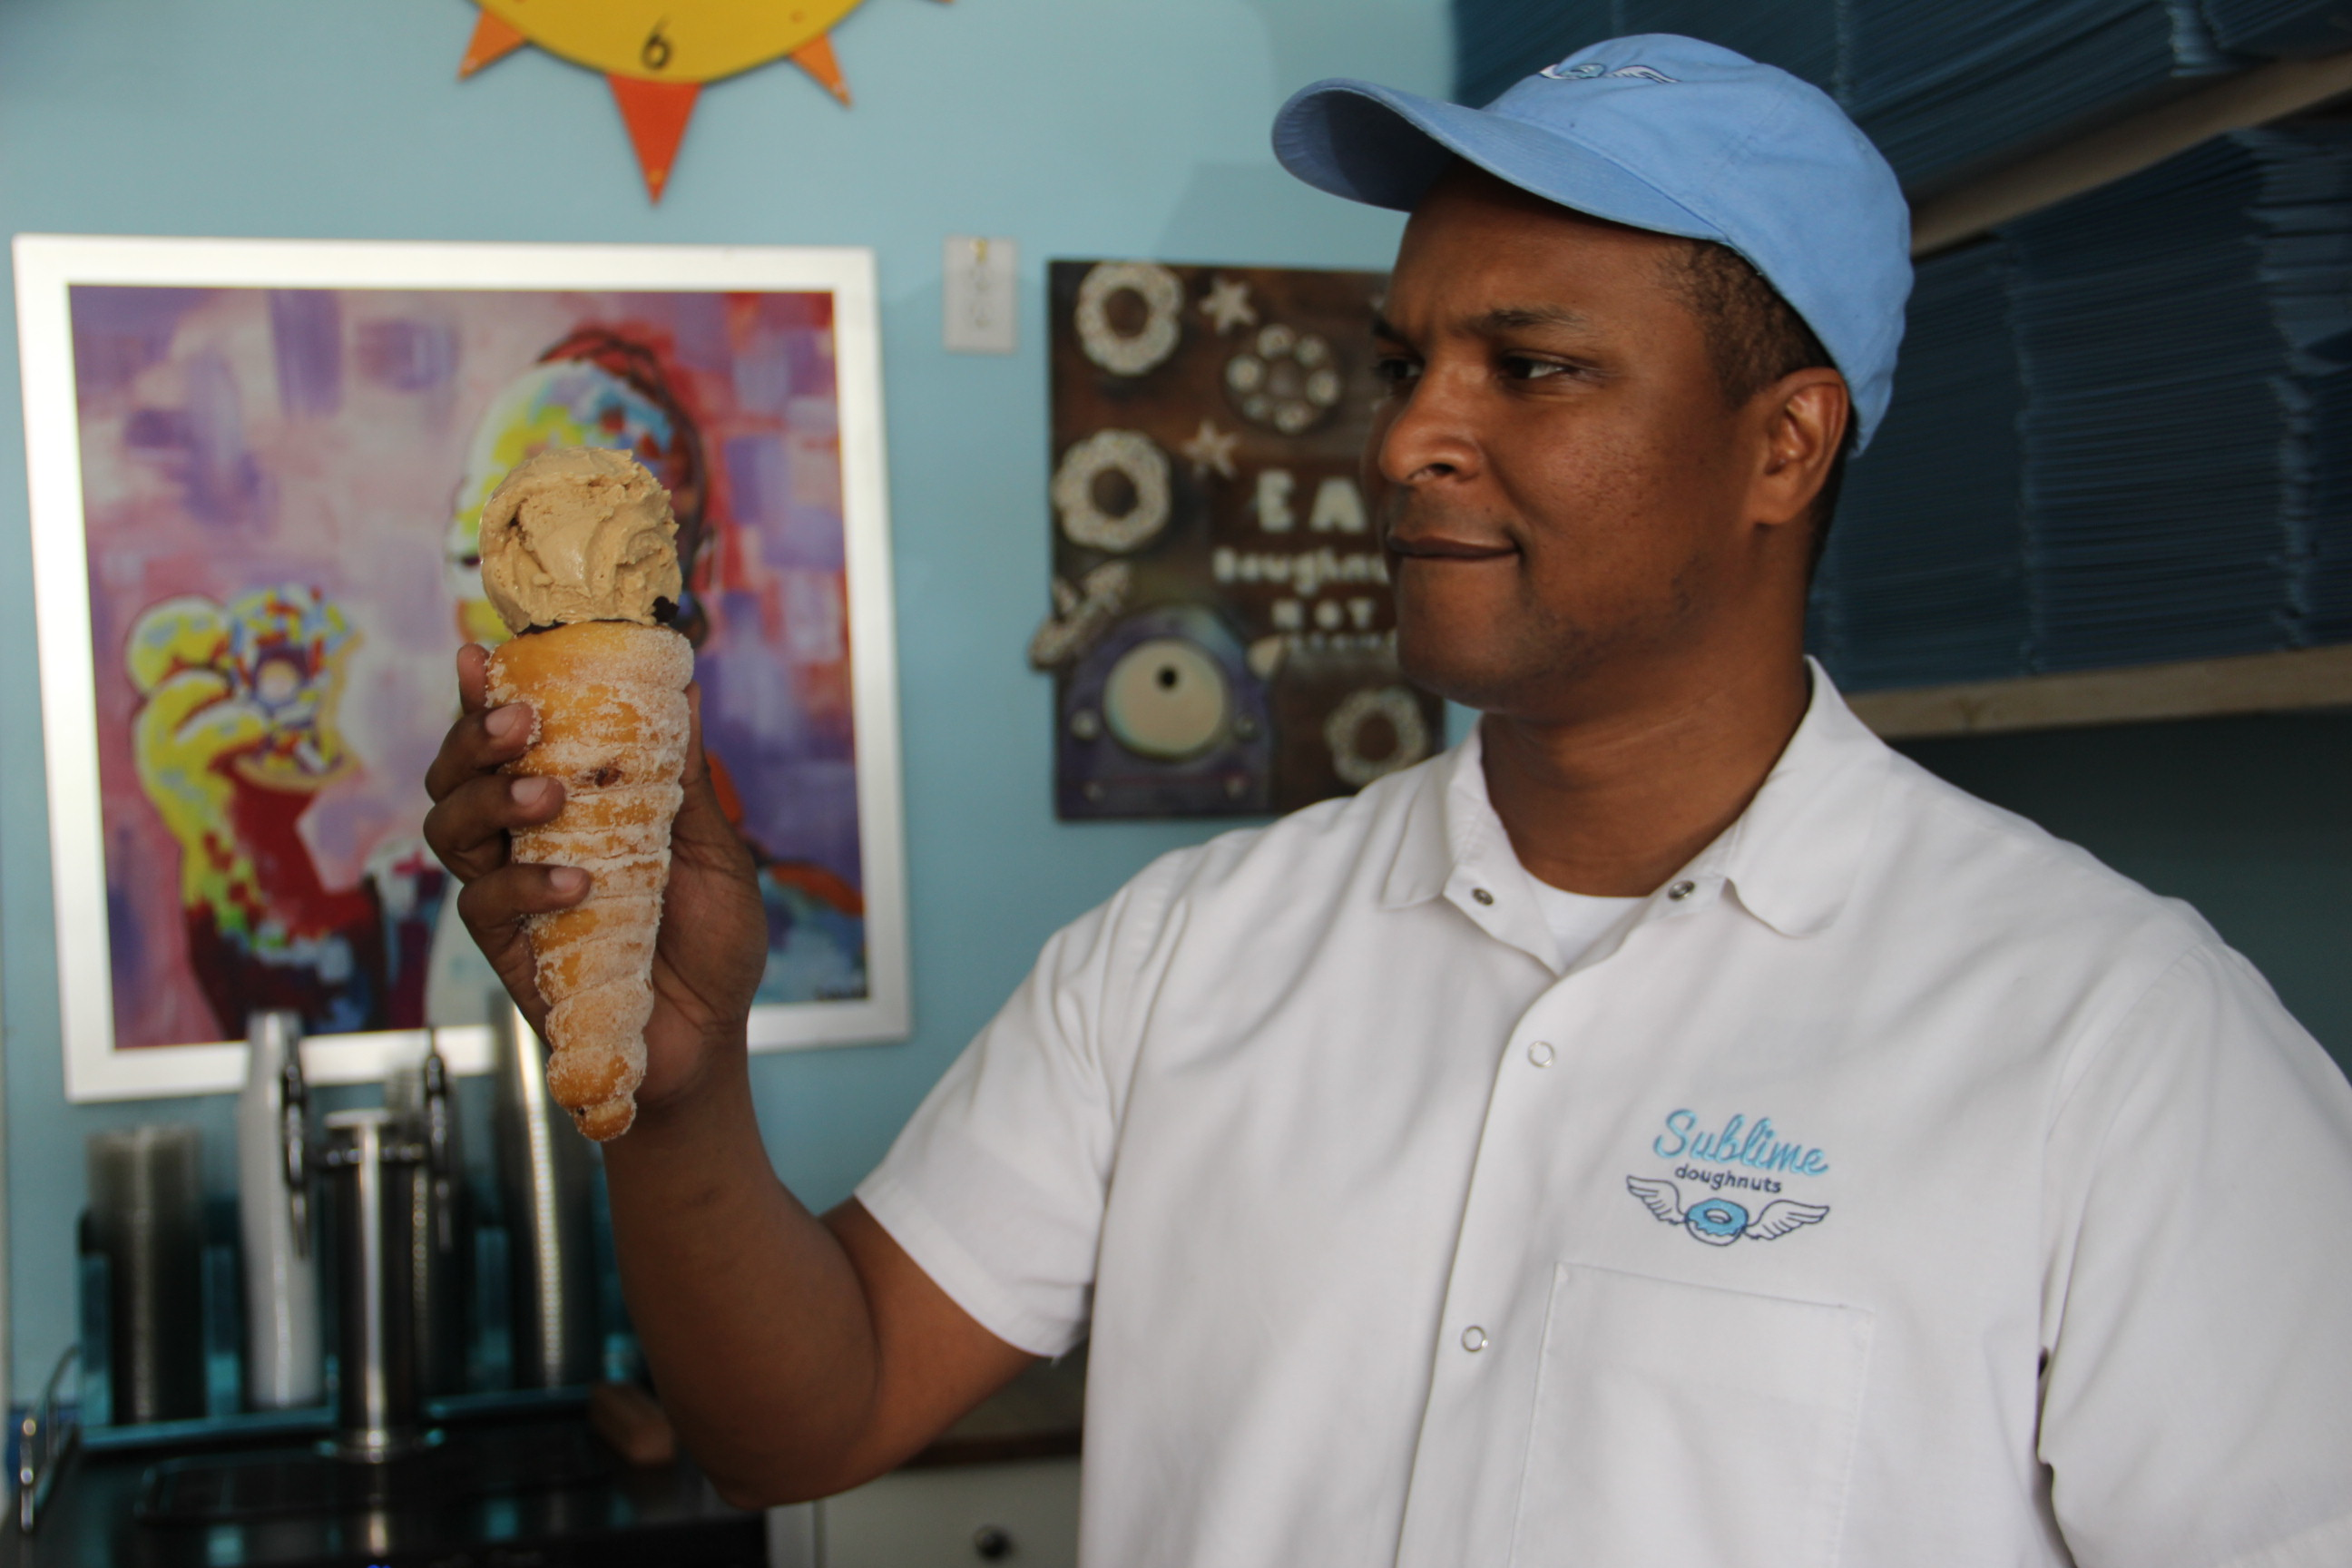 Sublime Doughnuts' owner Kamal Grant and his doughnut ice cream cone